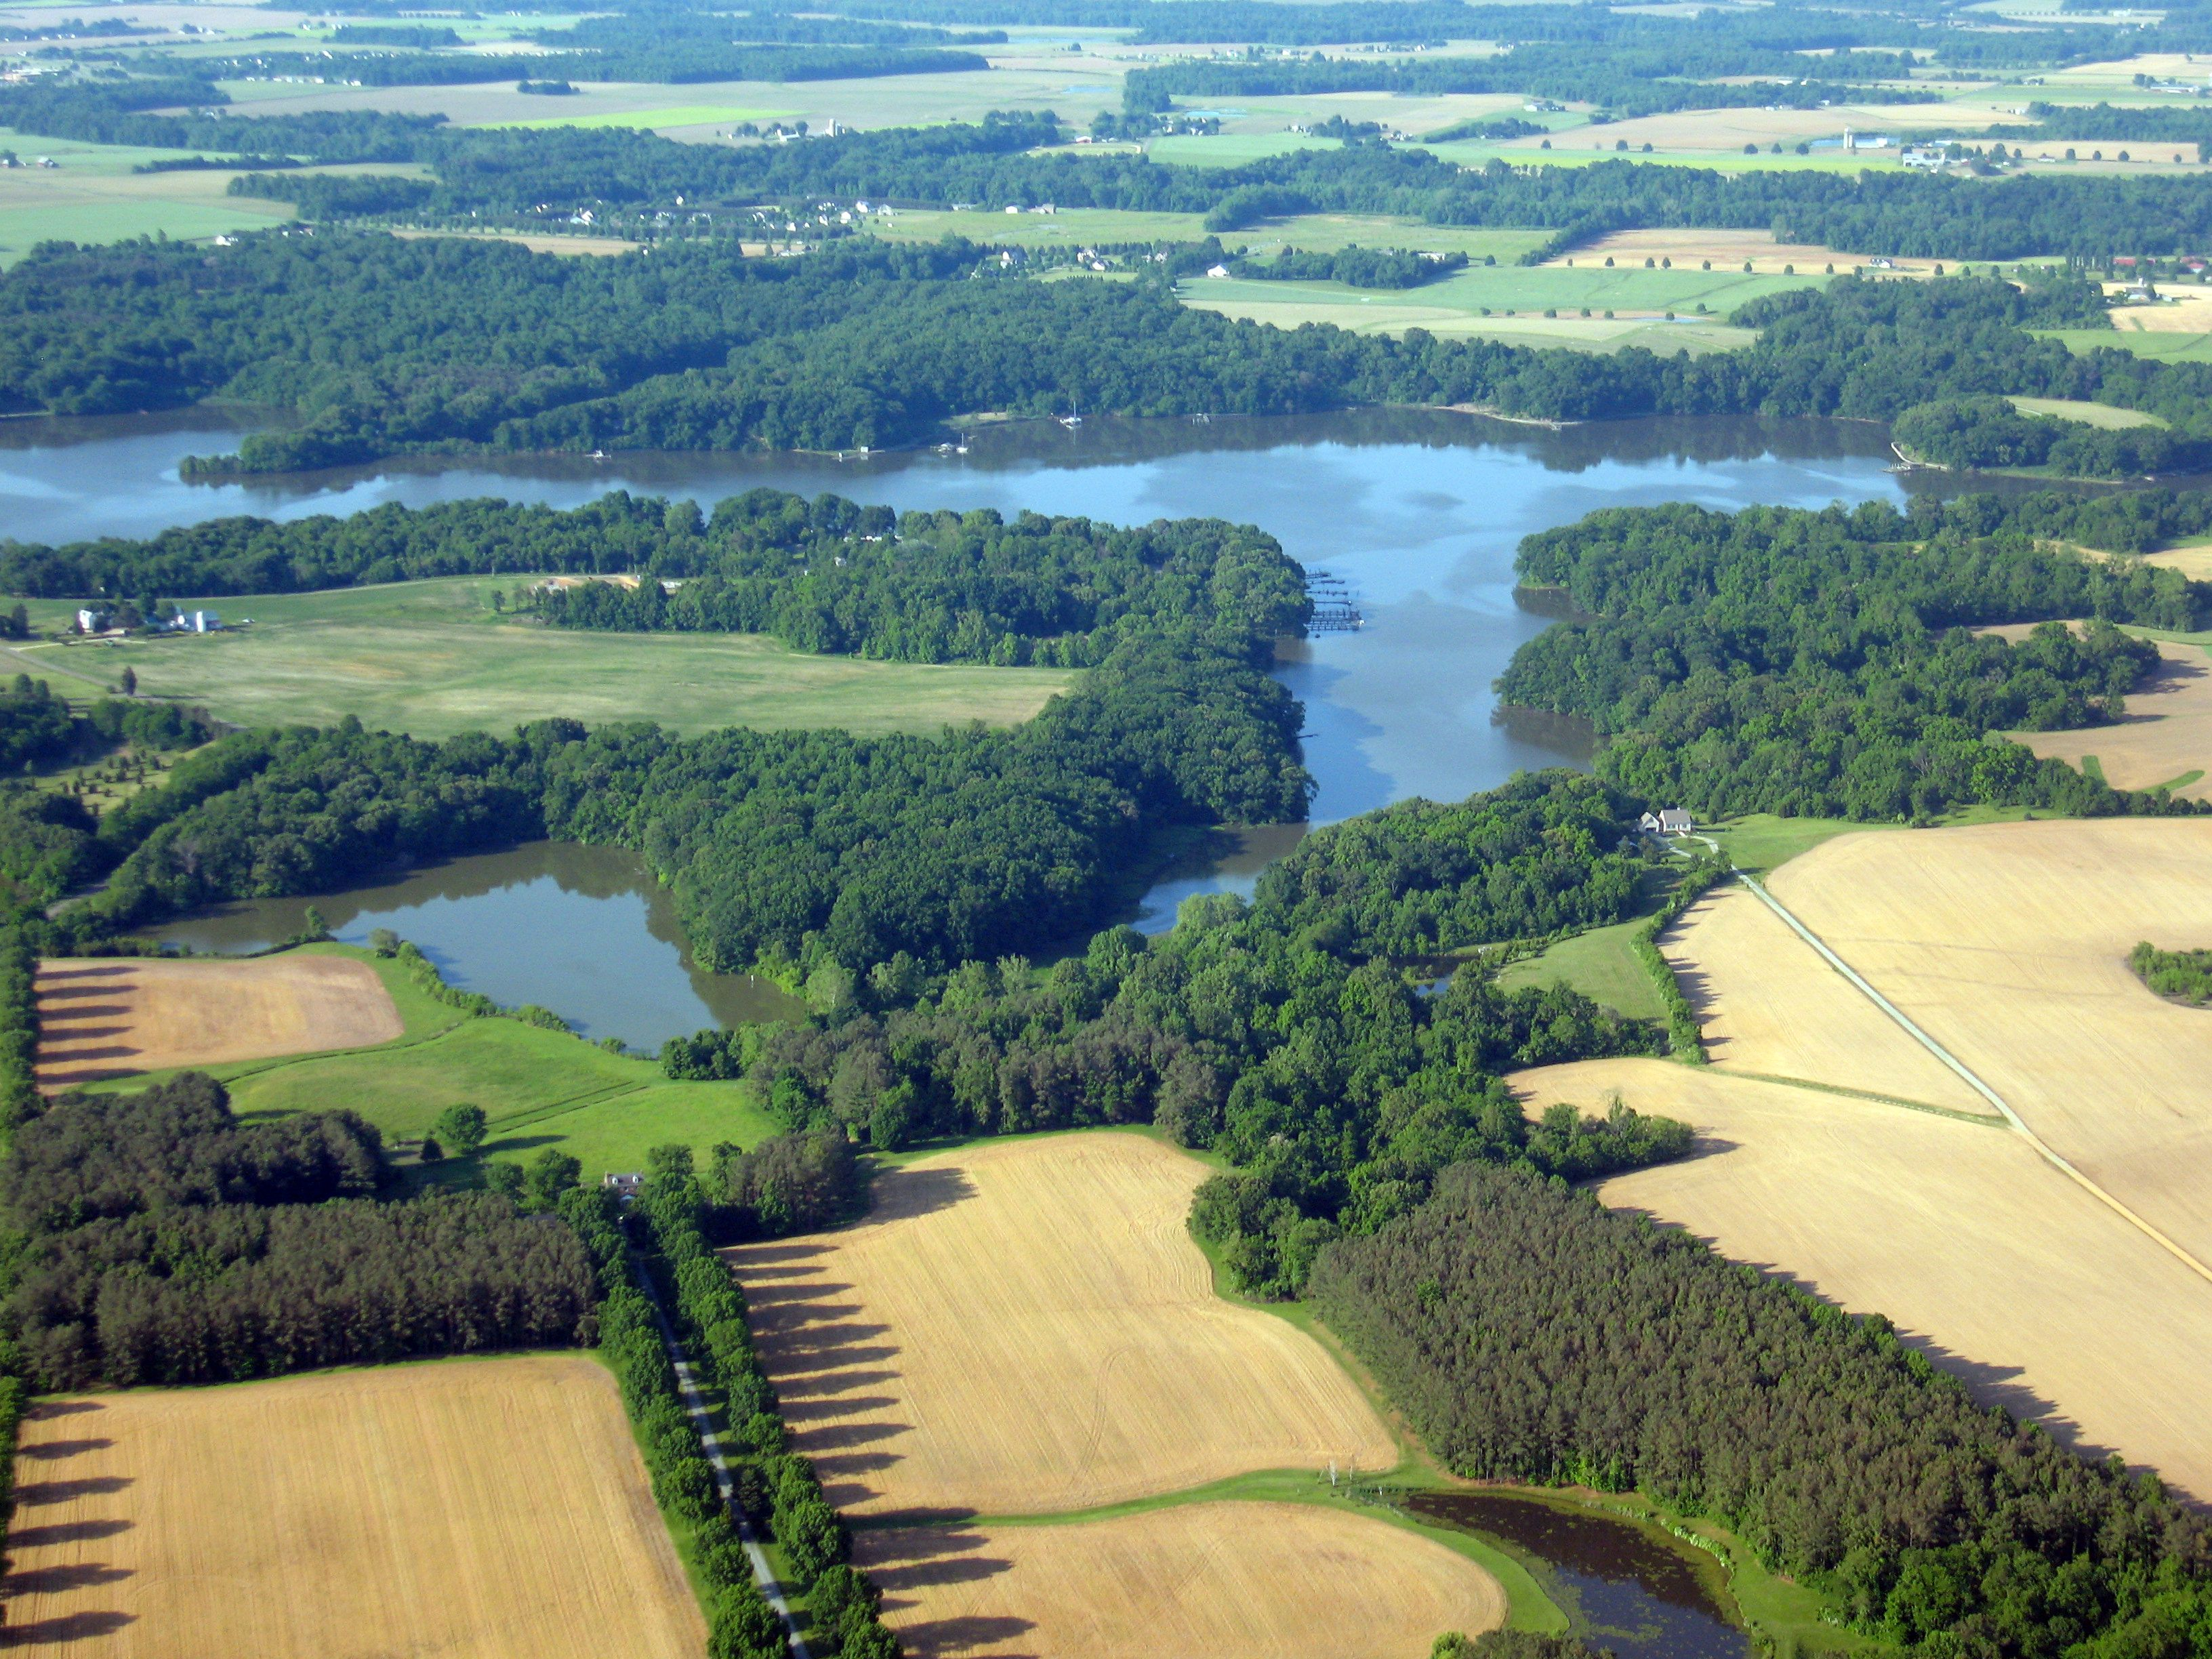 Aerial view of Maryland farmland with Riparian